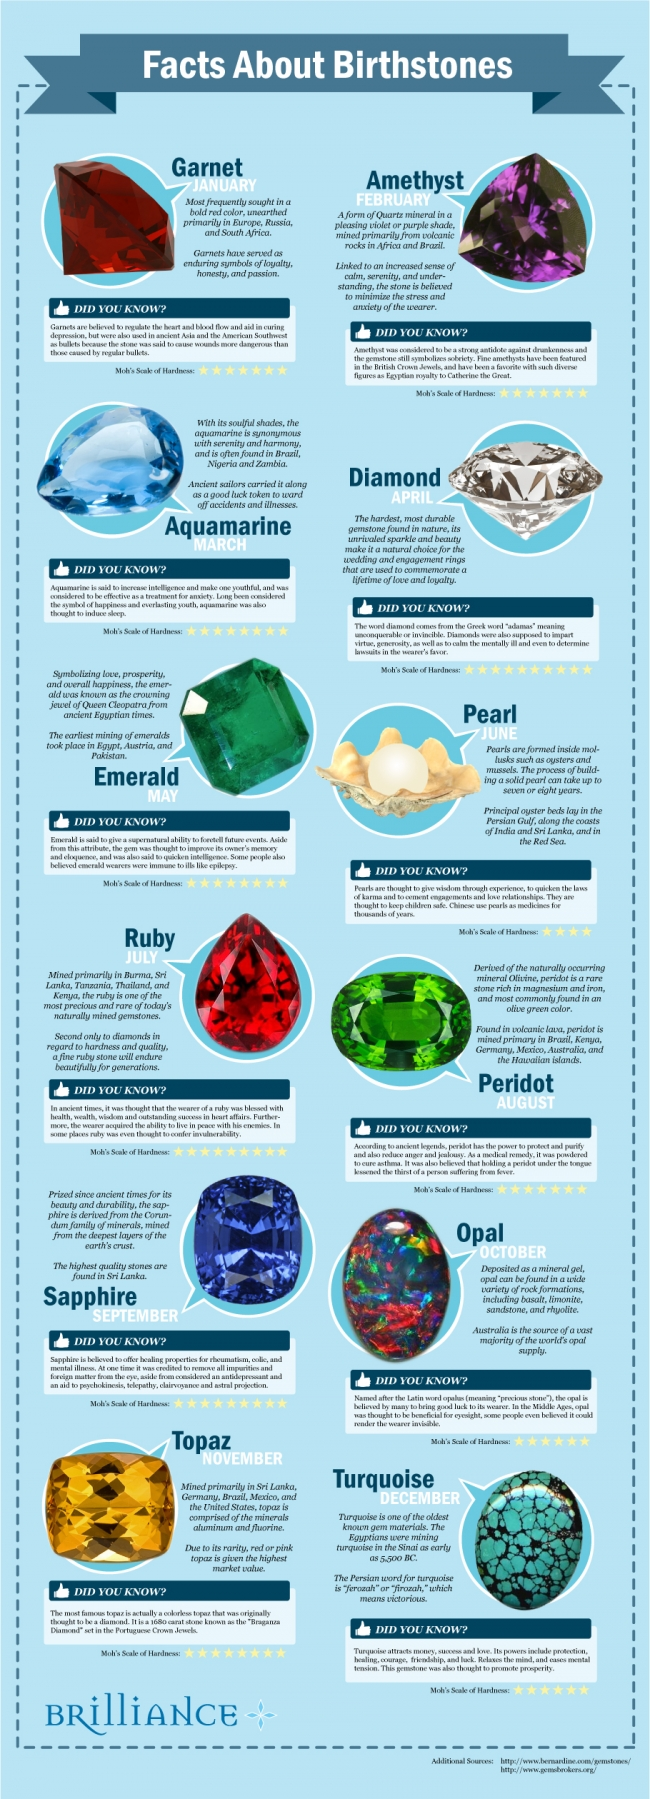 Birthstones and Their Meanings: An Infographic